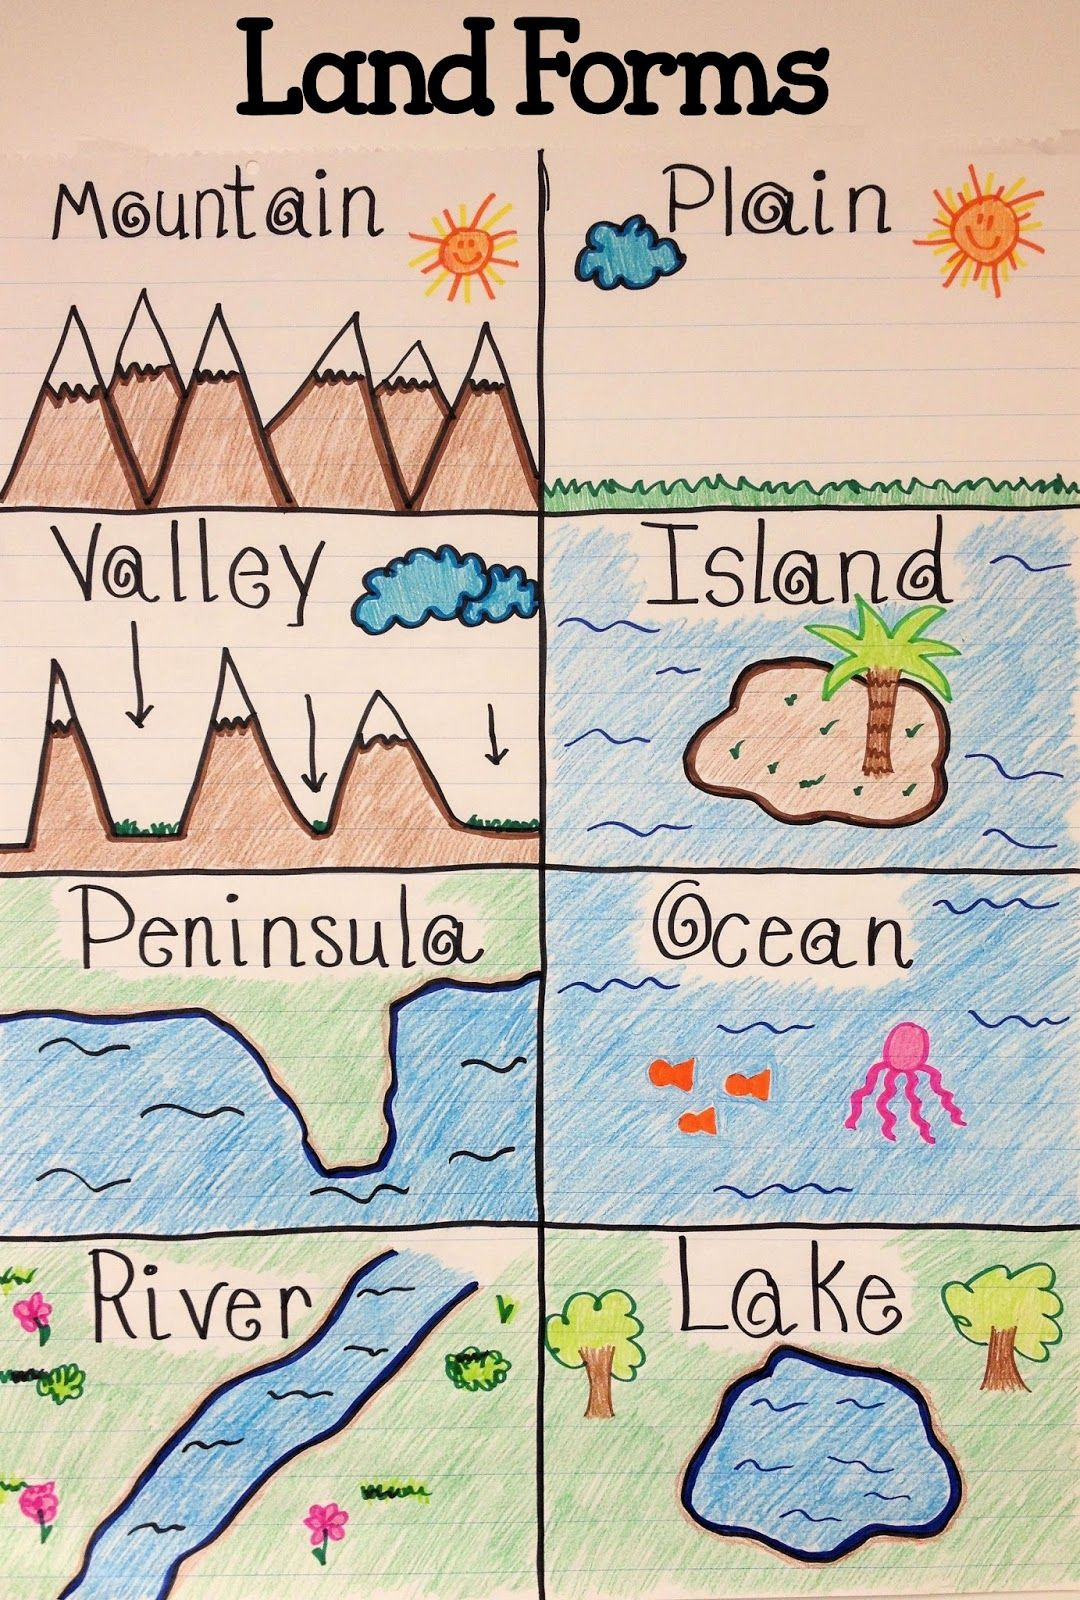 worksheet Landform Worksheet pin by katy mcneer on school is cool pinterest social studies teaching ideas